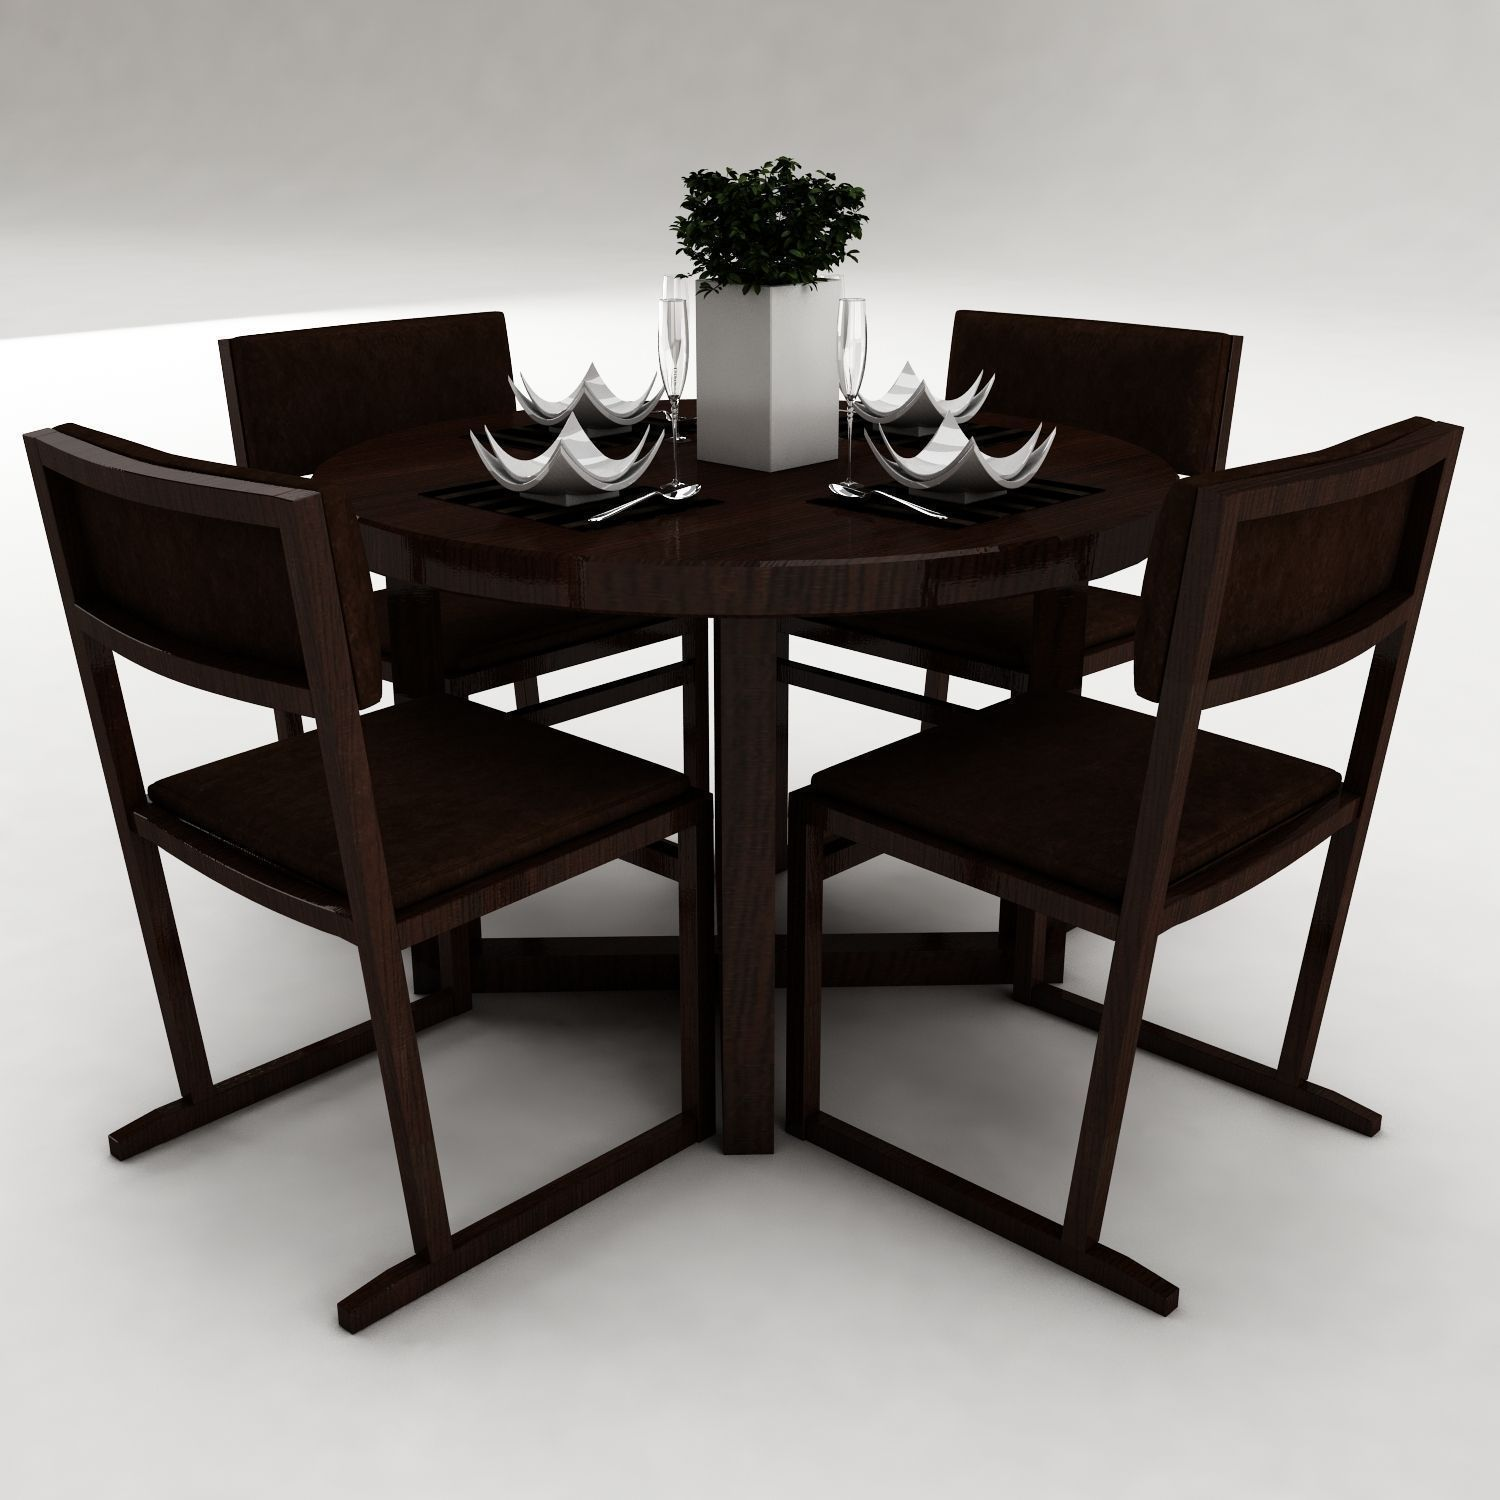 Dining table set 33 3d model max obj 3ds fbx for Dining table latest model